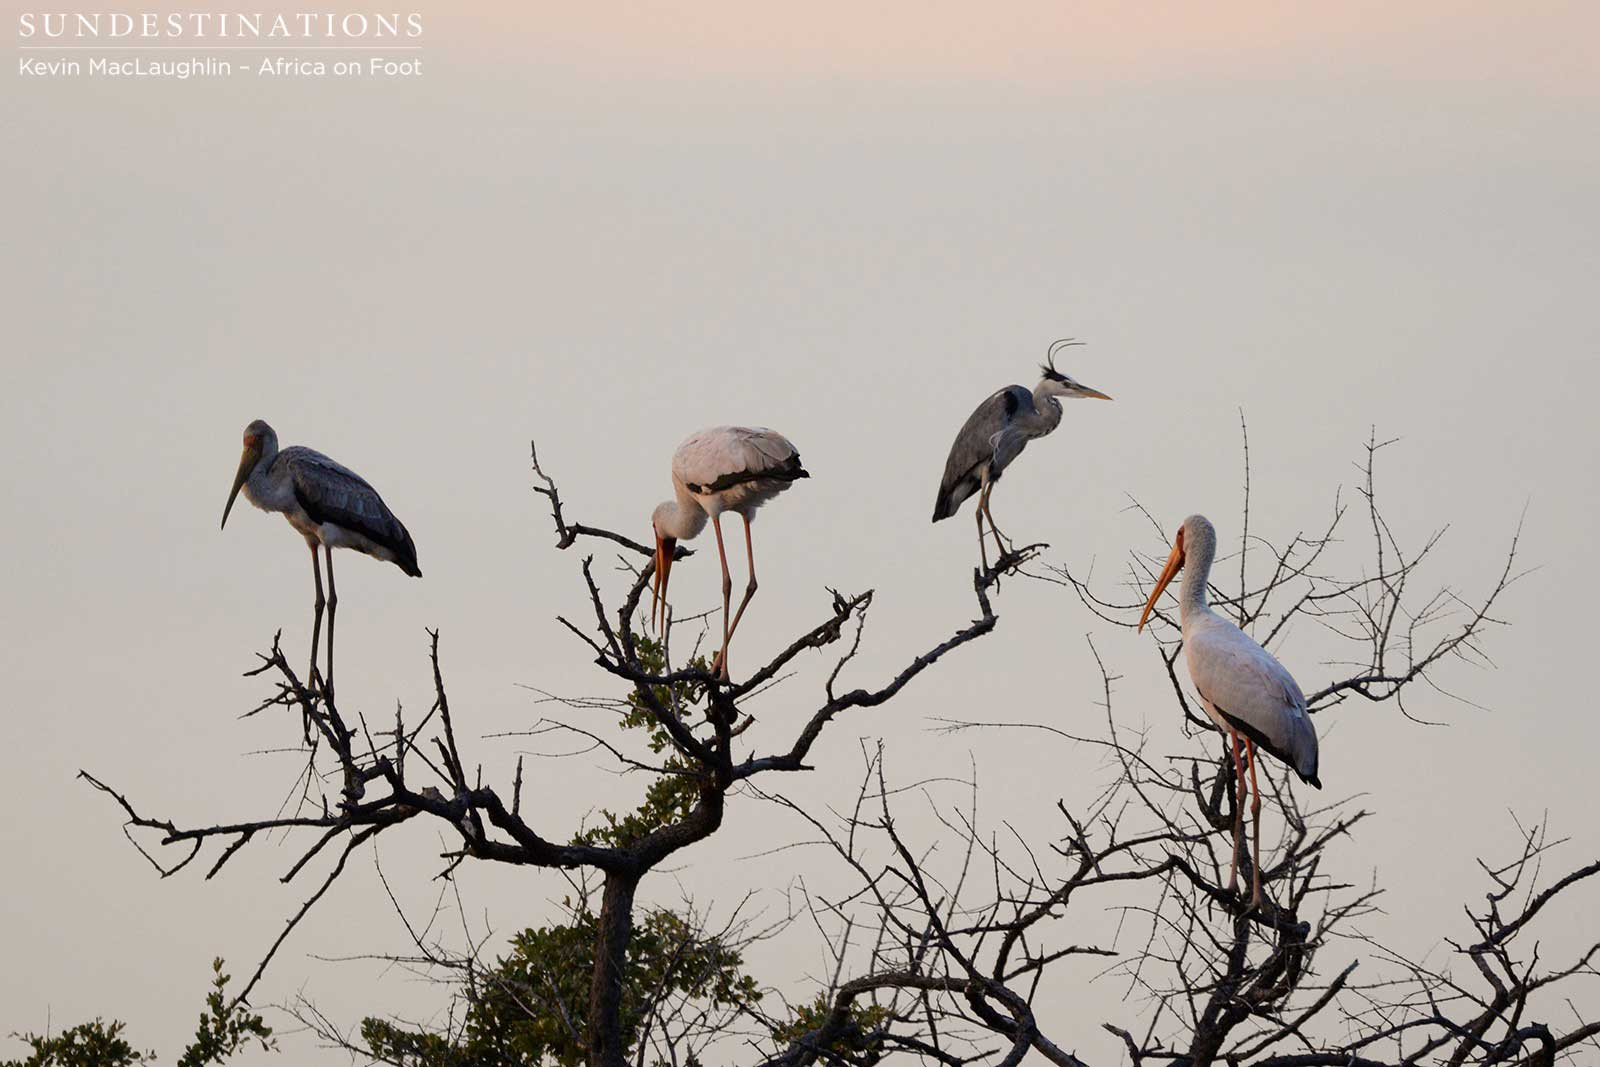 Yellow-billed storks and a grey heron